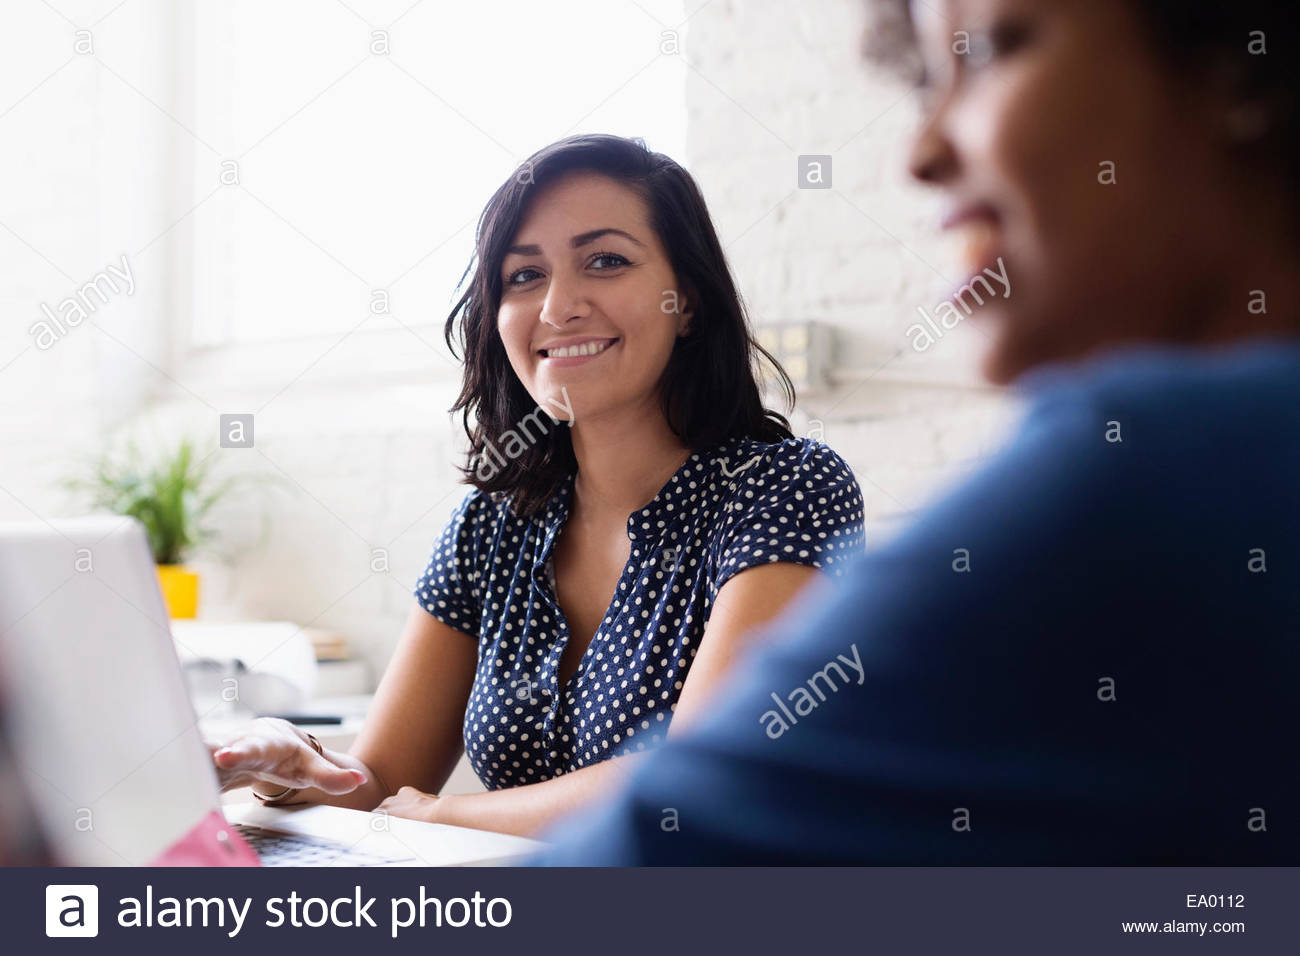 Colleagues in Small Business, Start-up - Stock Image